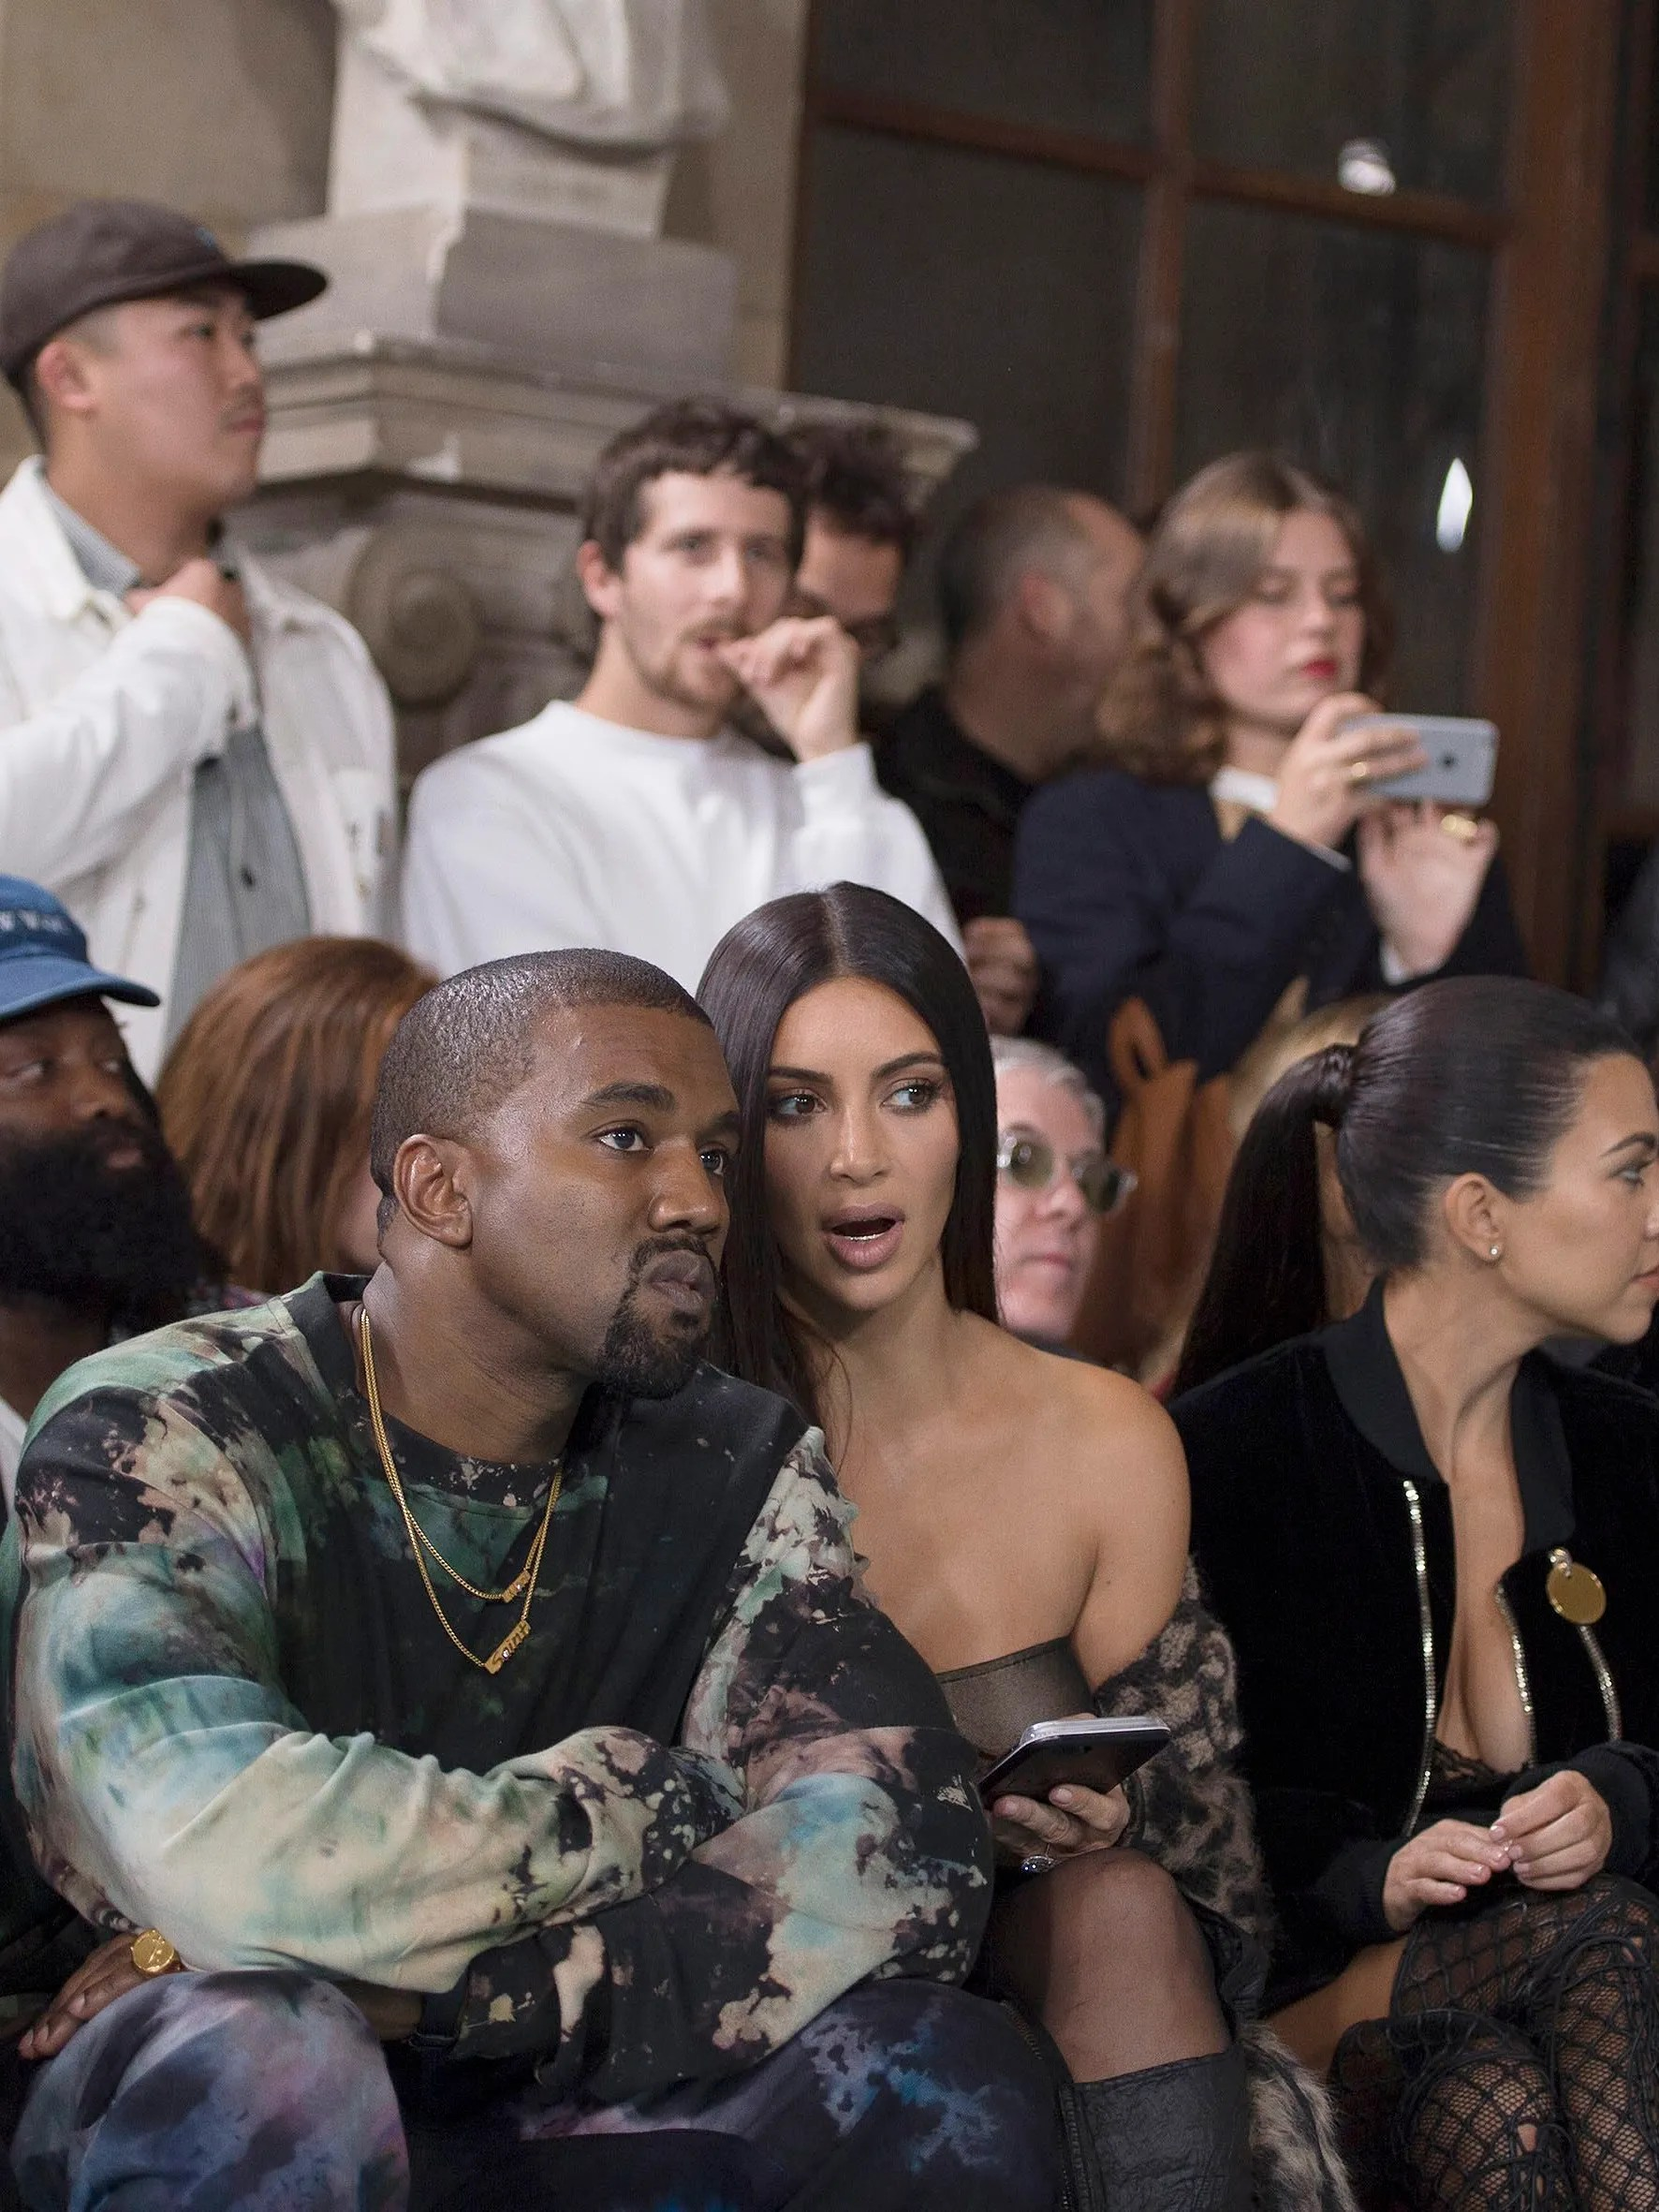 West and Kardashian sit front row at Paris Fashion Week with other members of the Kardashian family.